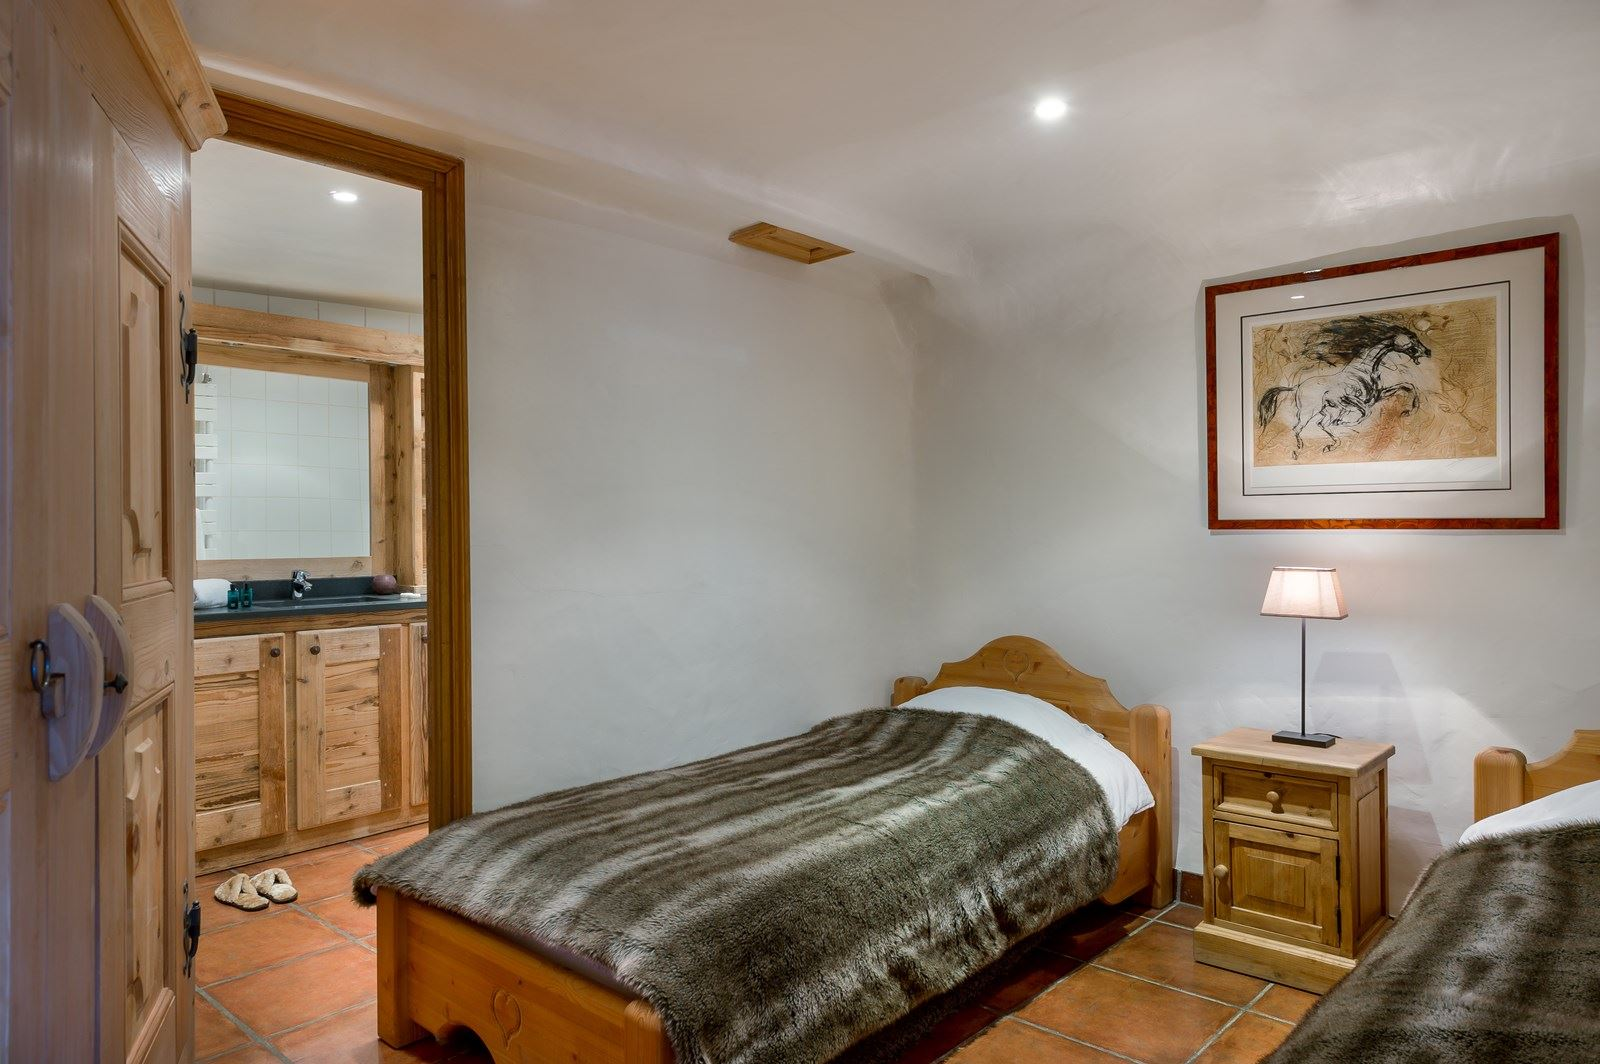 6 rooms 10 people / SAINT NICOLAS (mountain of dream)